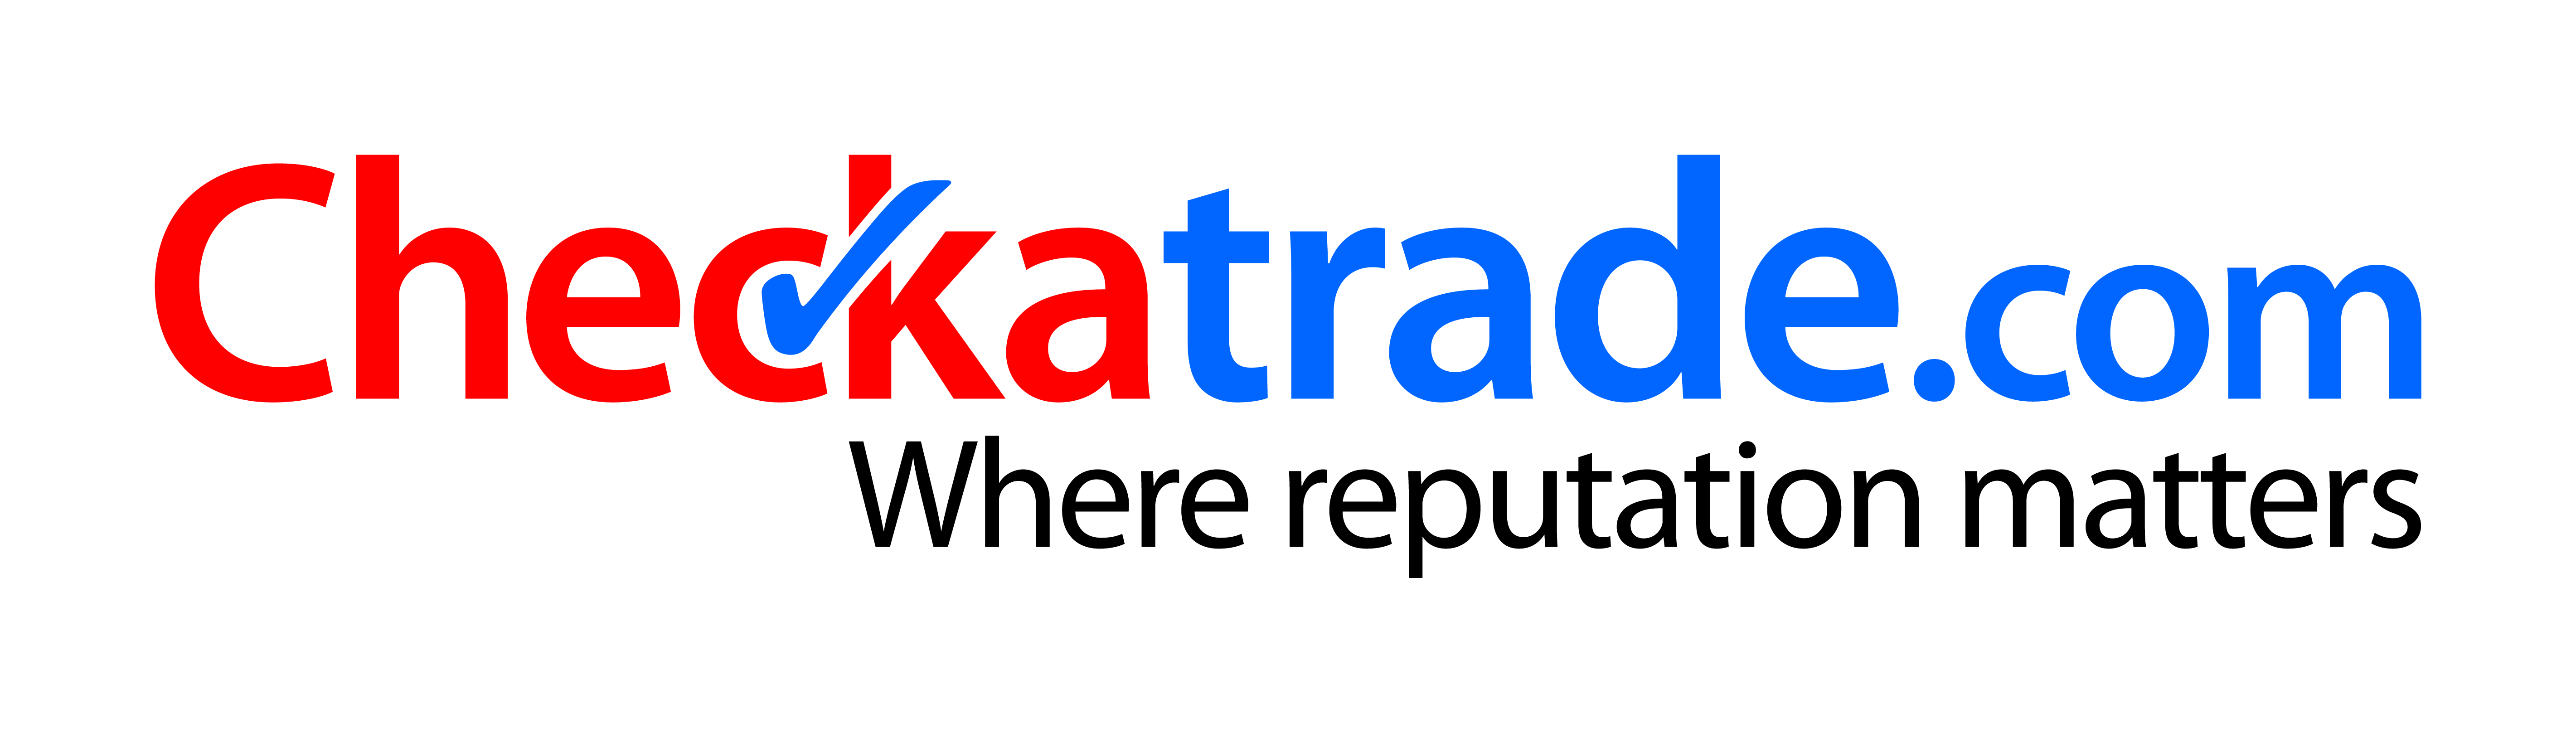 Checkatrade.com - Hero Services